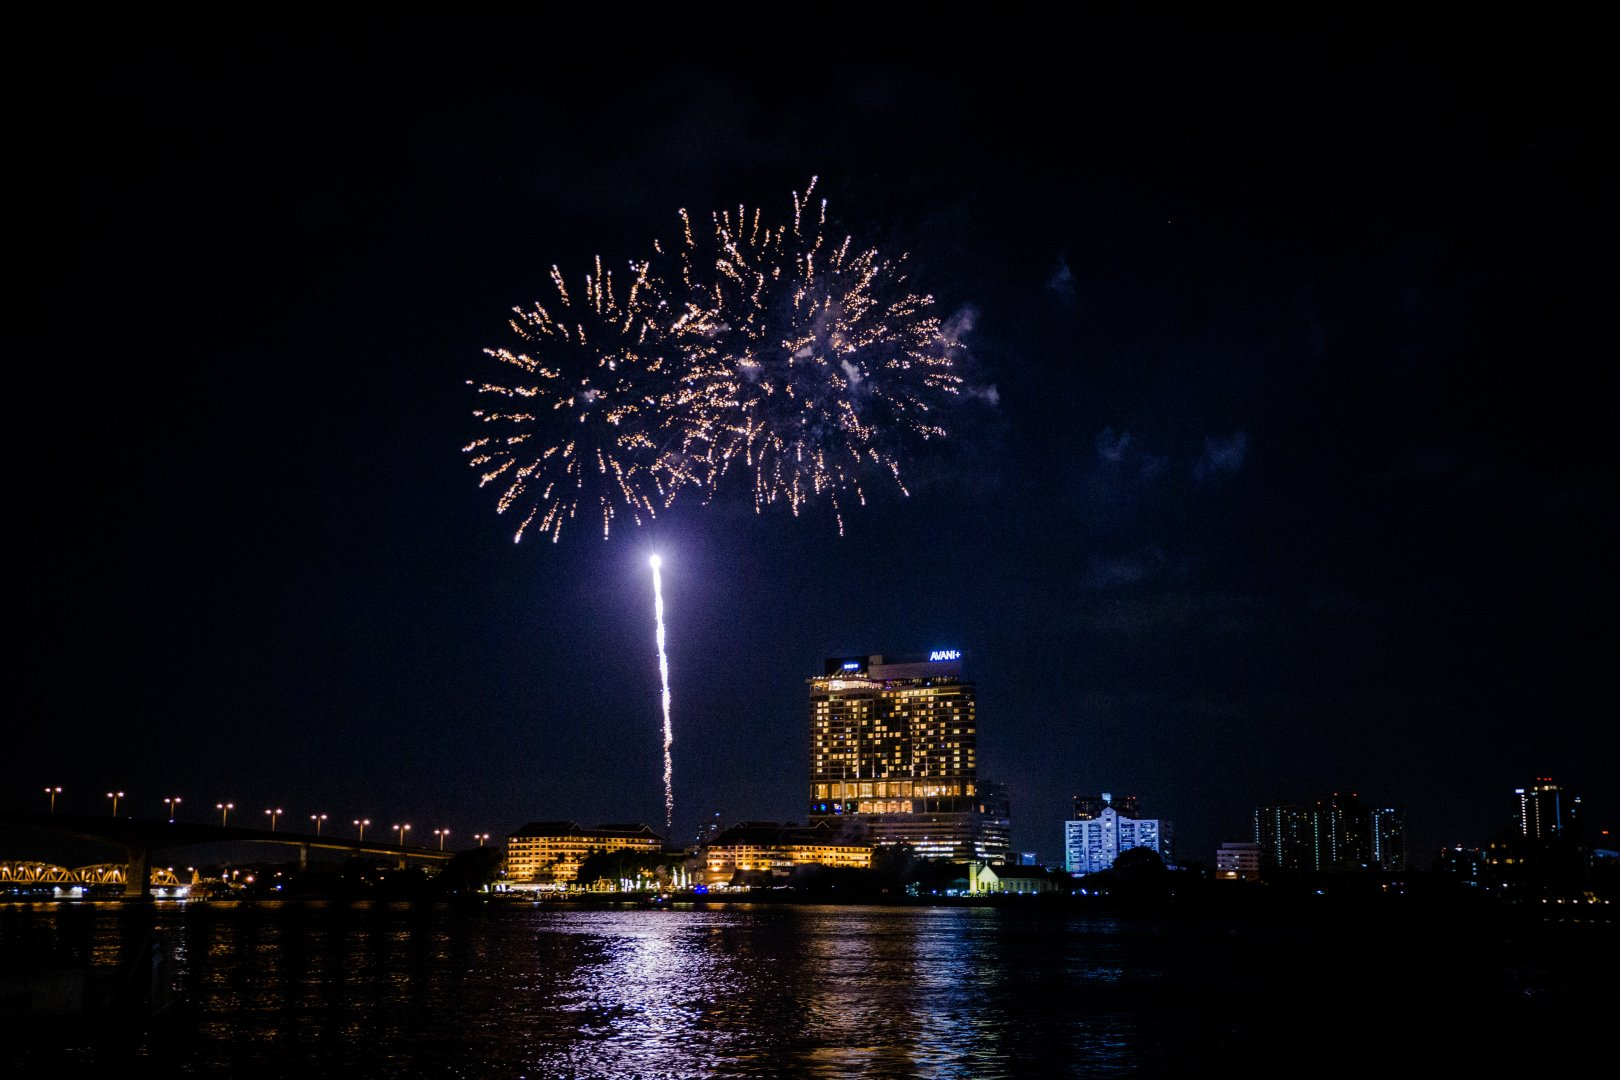 Fireworks Night New Years Day Sky Landmark River Midnight Metropolitan area Reflection Event Lighting City Holiday Architecture Darkness Urban area Recreation New year's eve Cityscape Waterway New year Festival Fête Downtown Independence day Metropolis Skyline Space Bank Harbor